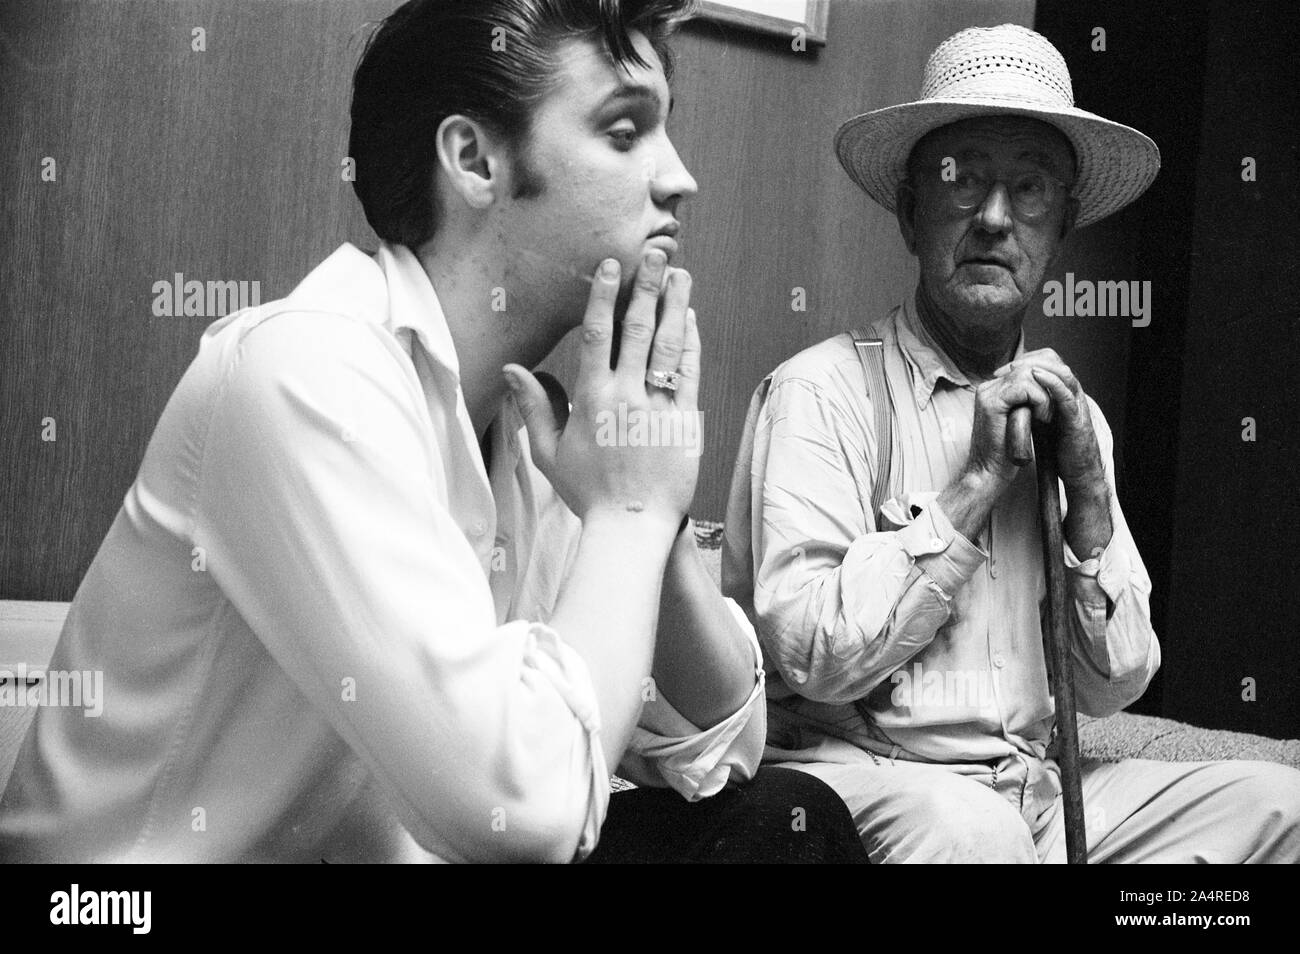 Elvis Presley with family friend Dan Shackleford, at Elvis's house at 1034 Audubon Drive, Memphis, Tennessee, May 29, 1956 Stock Photo